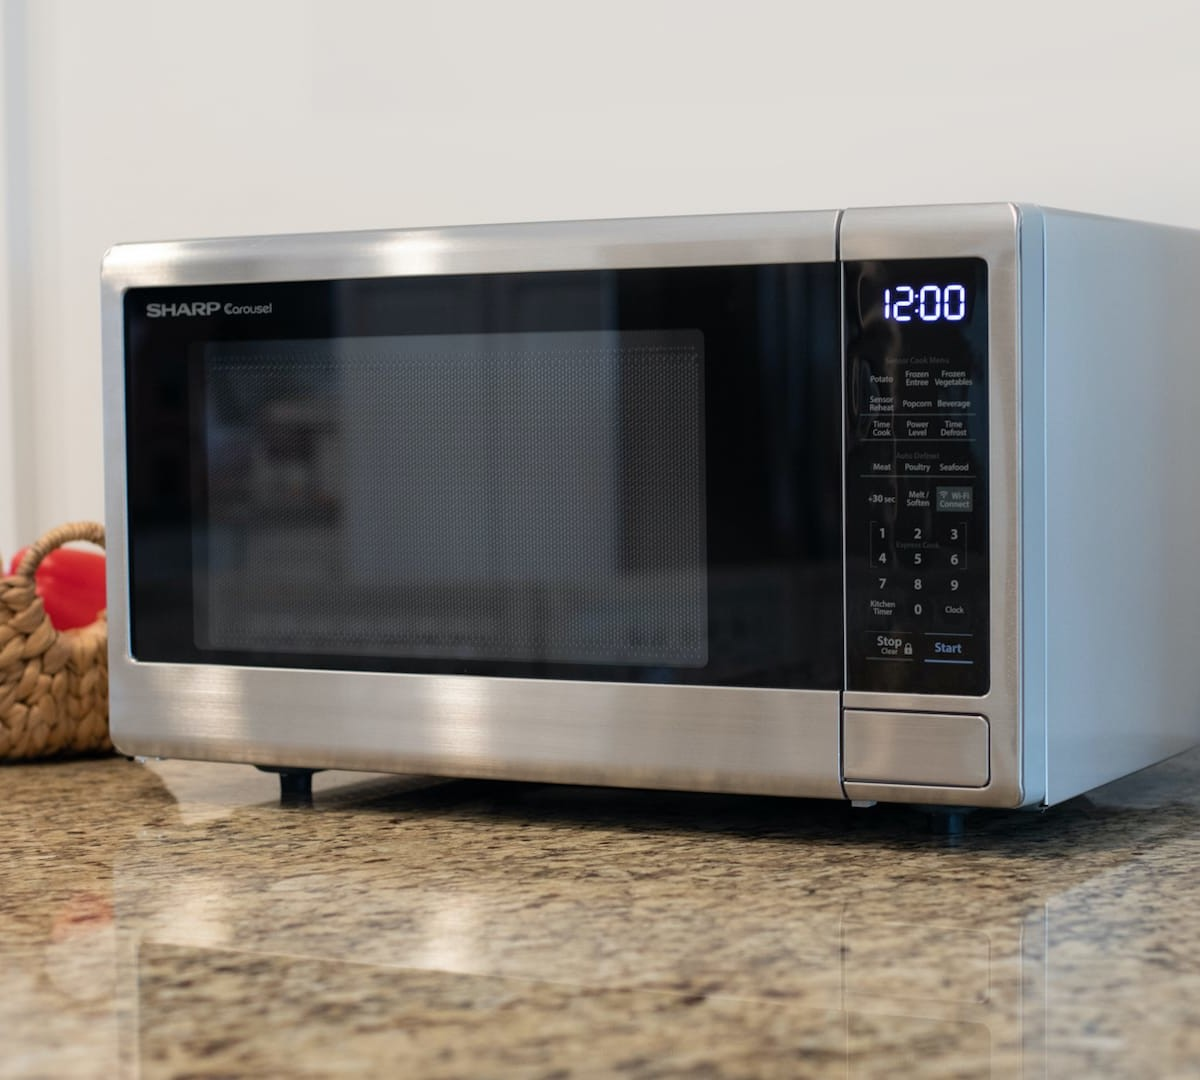 sharp smart countertop microwave ovens offer wi fi alexa connectivity